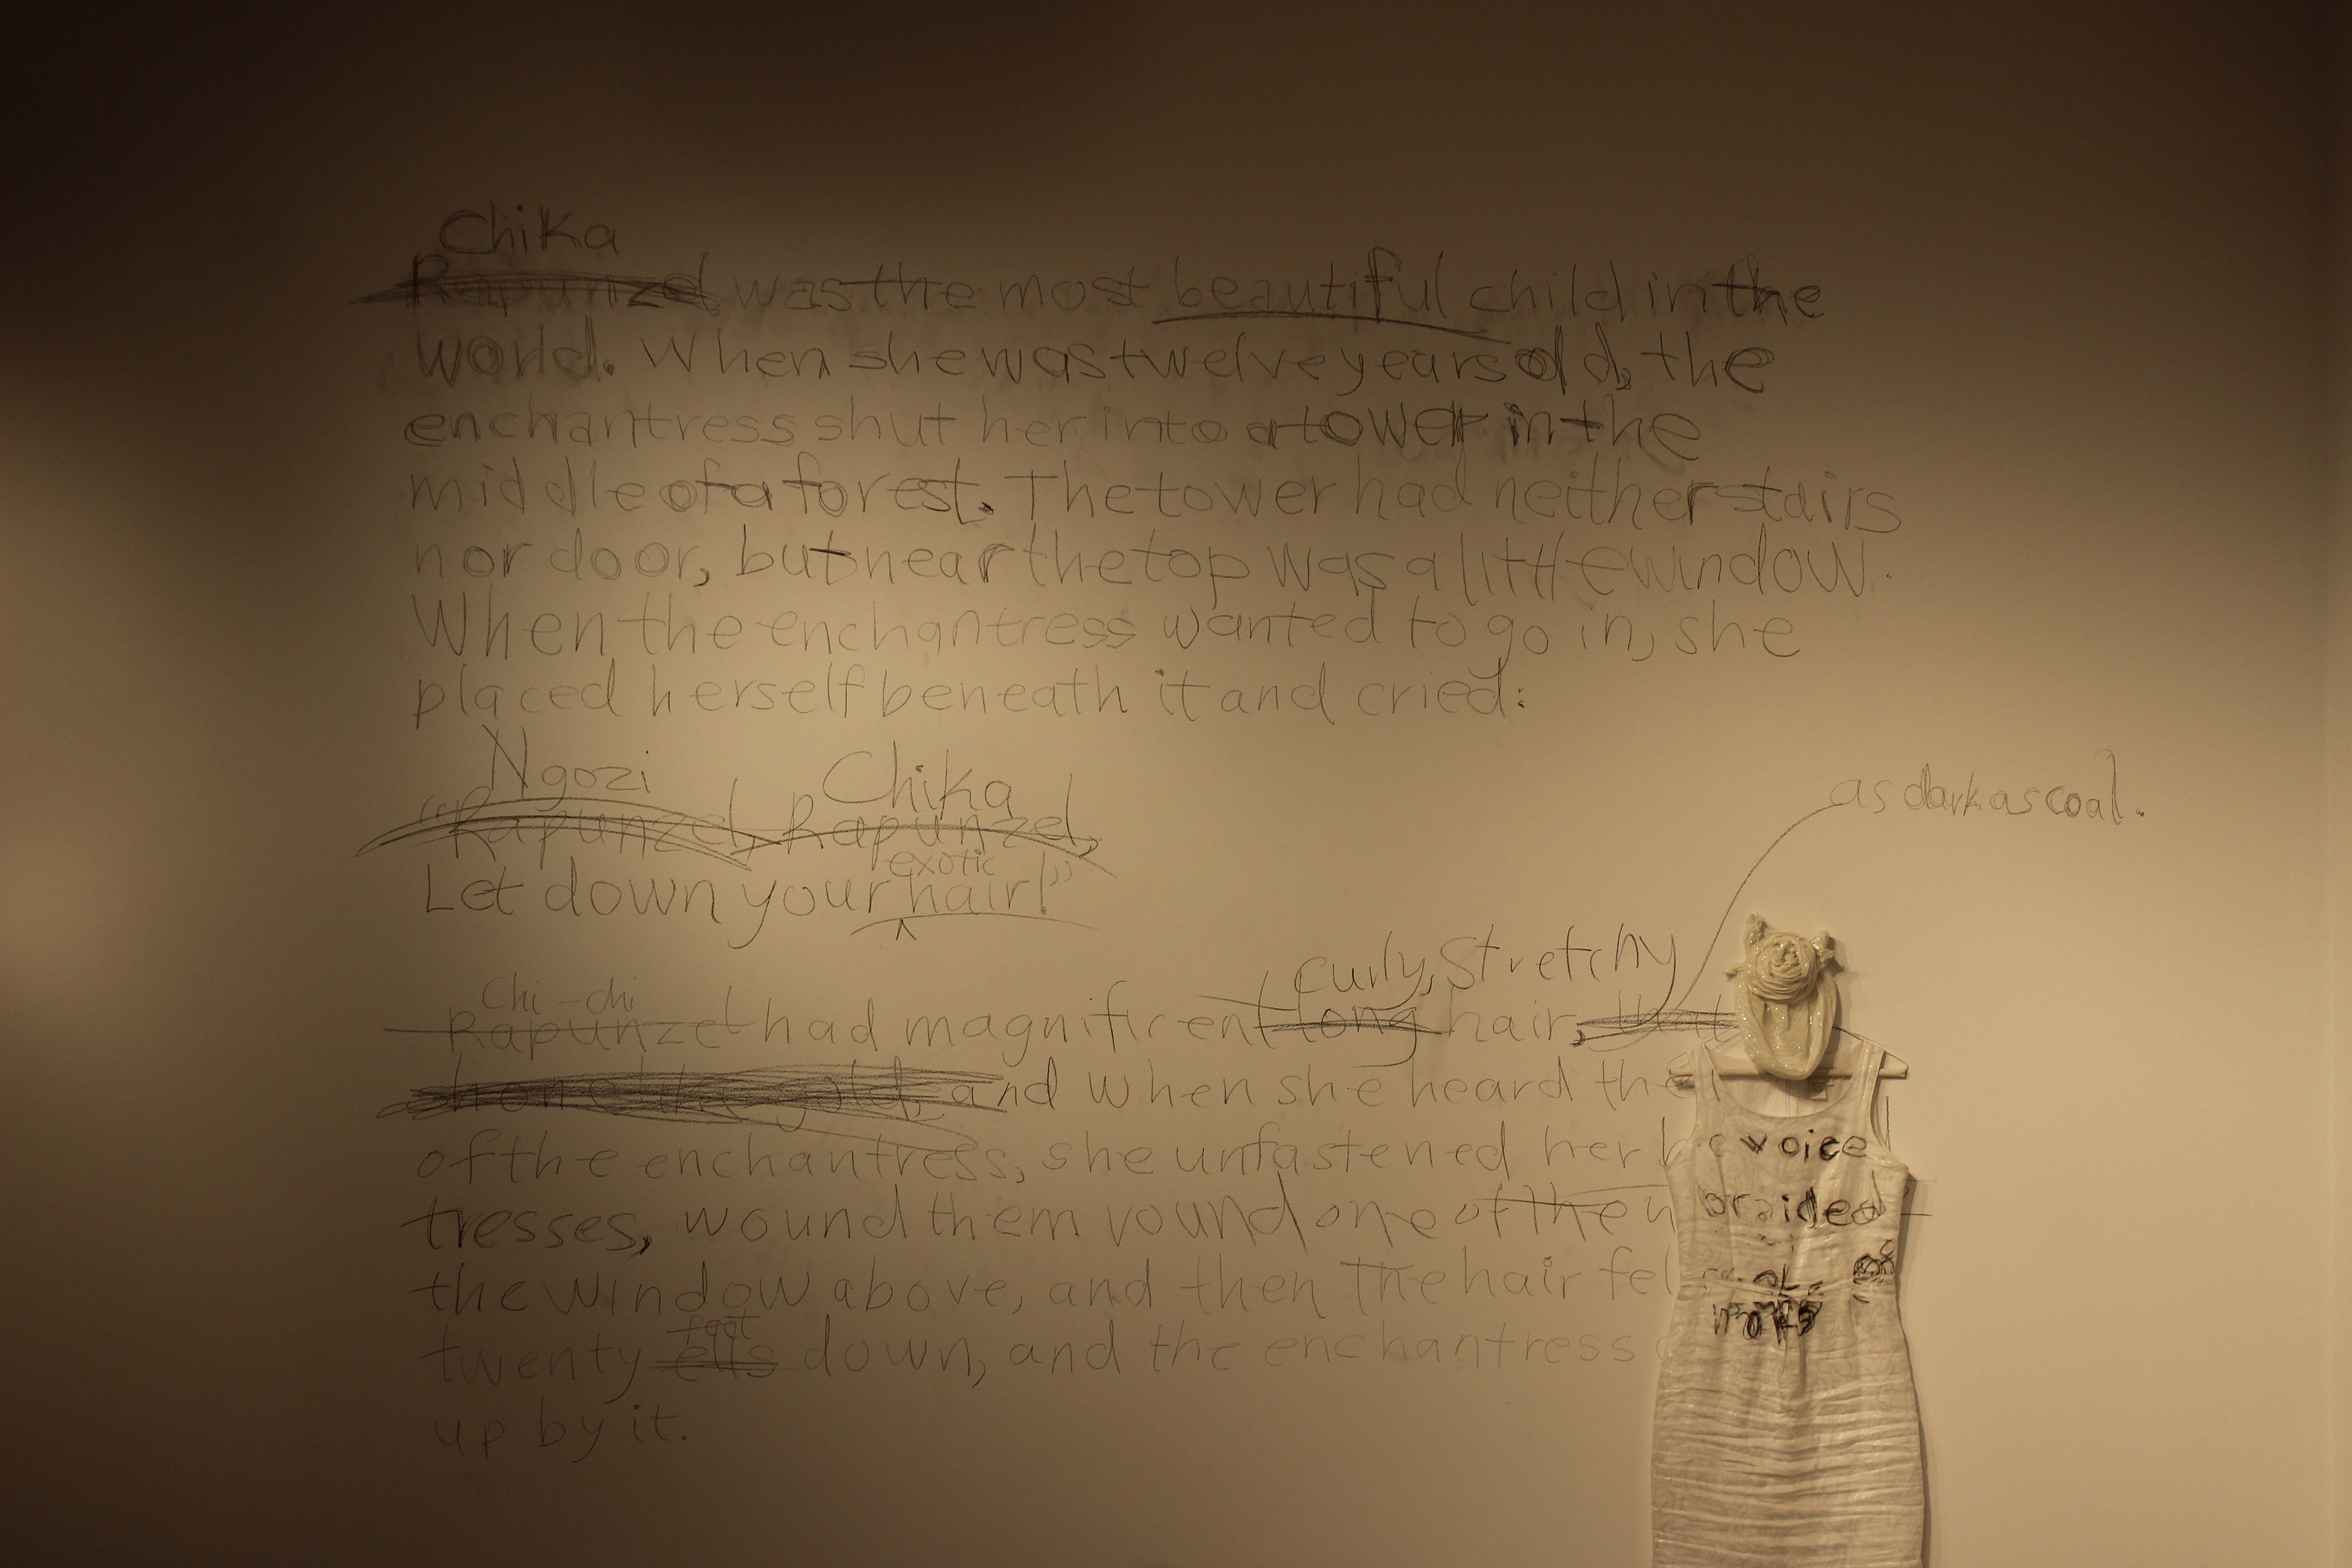 Inscriptions On the Wall and Dress